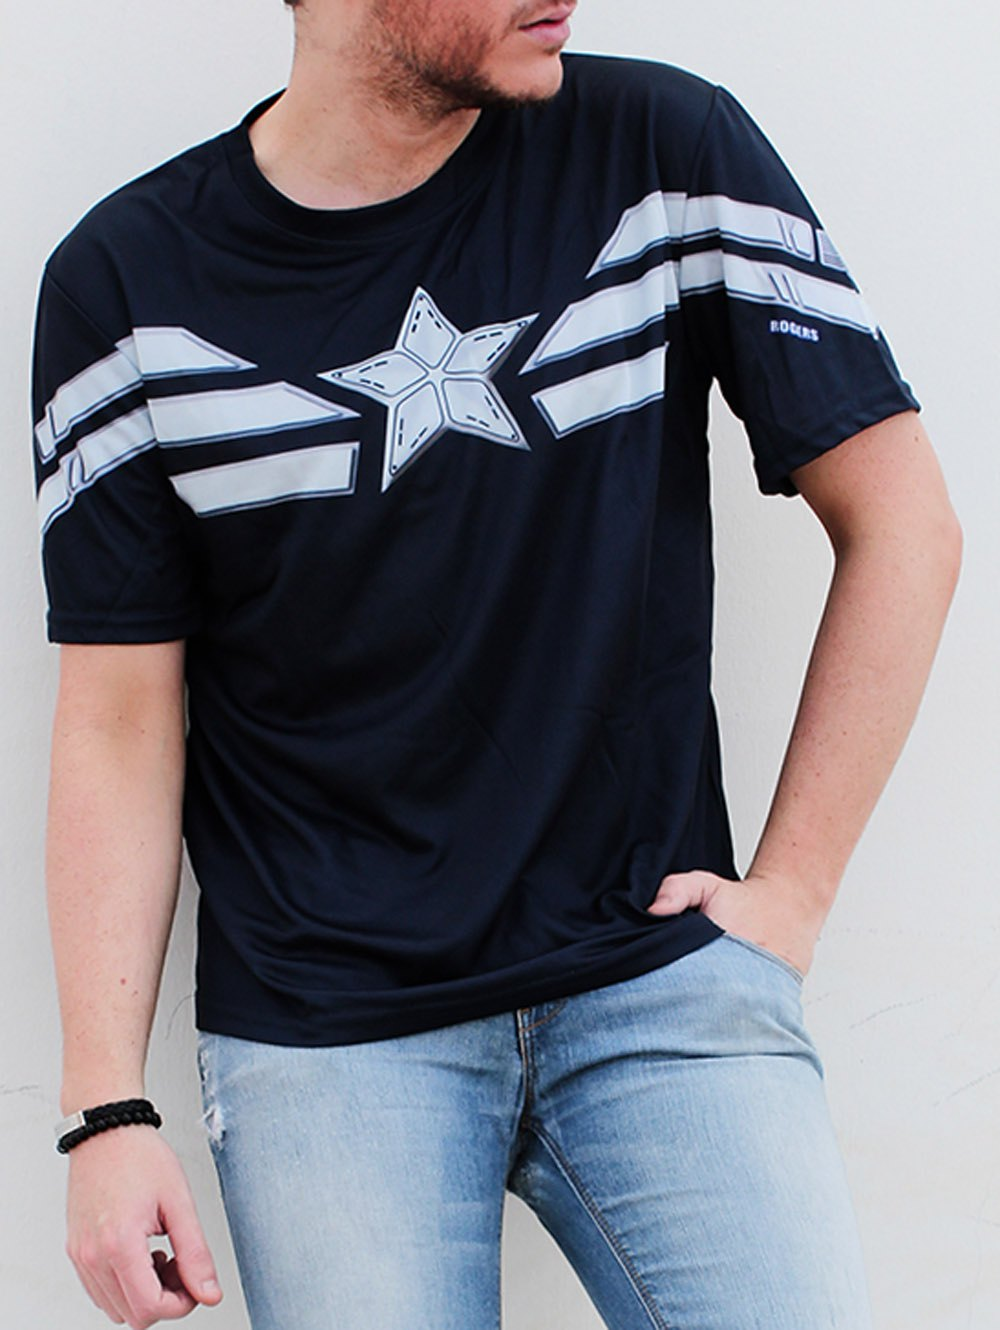 Shop Fashion Round Neck Slimming Color Block Captain America Design Short Sleeve Polyester T-Shirt For Men